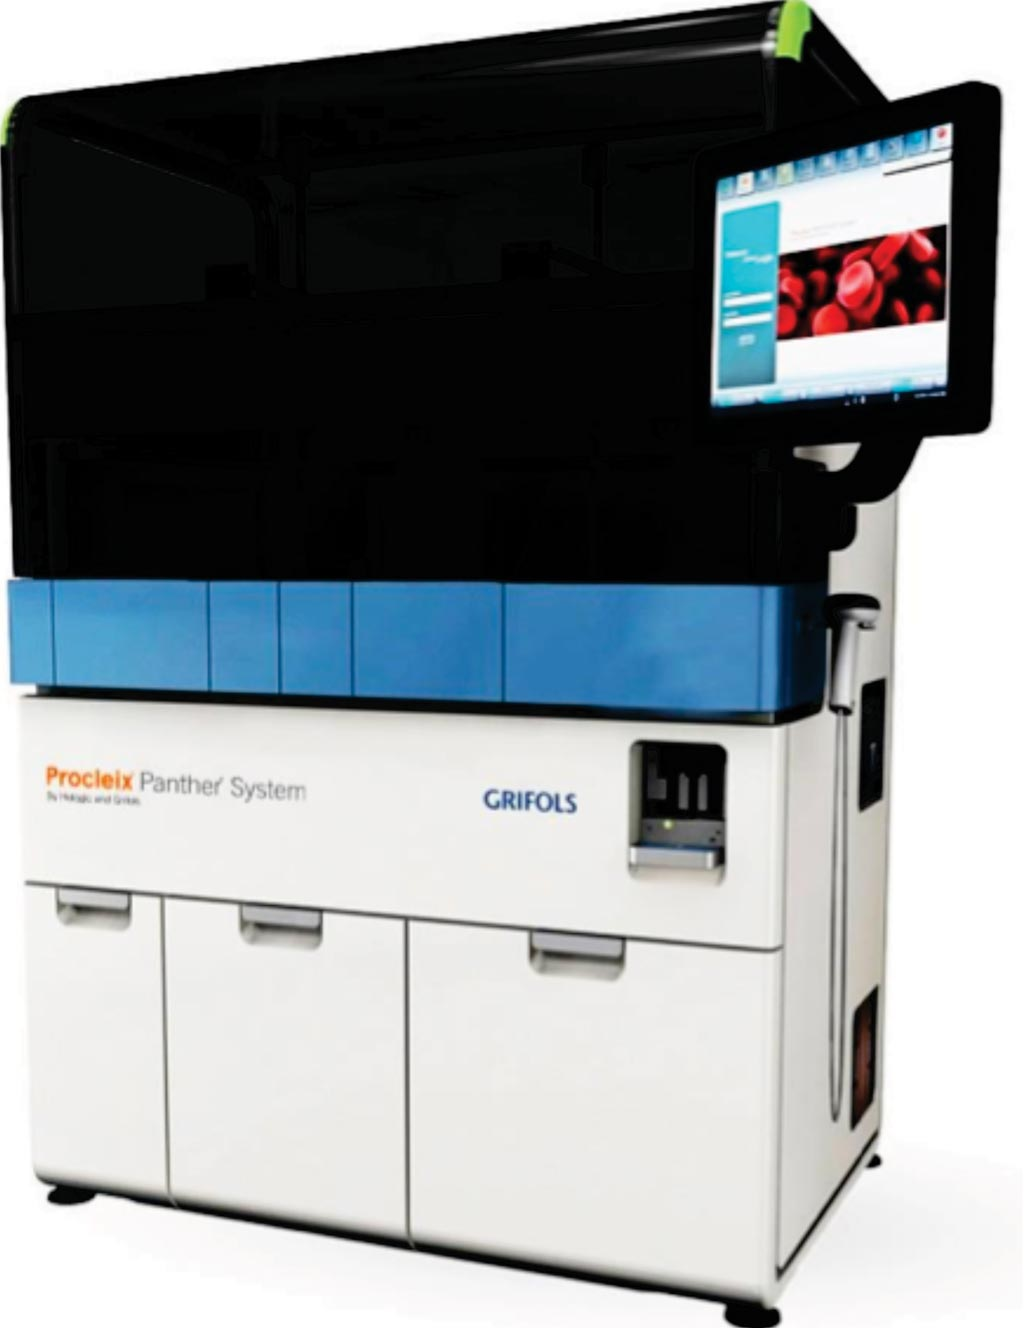 Image: The Procleix Panther system, a fully integrated and automated nucleic acid technology system for blood and plasma screening (Photo courtesy of Grifols Diagnostics).